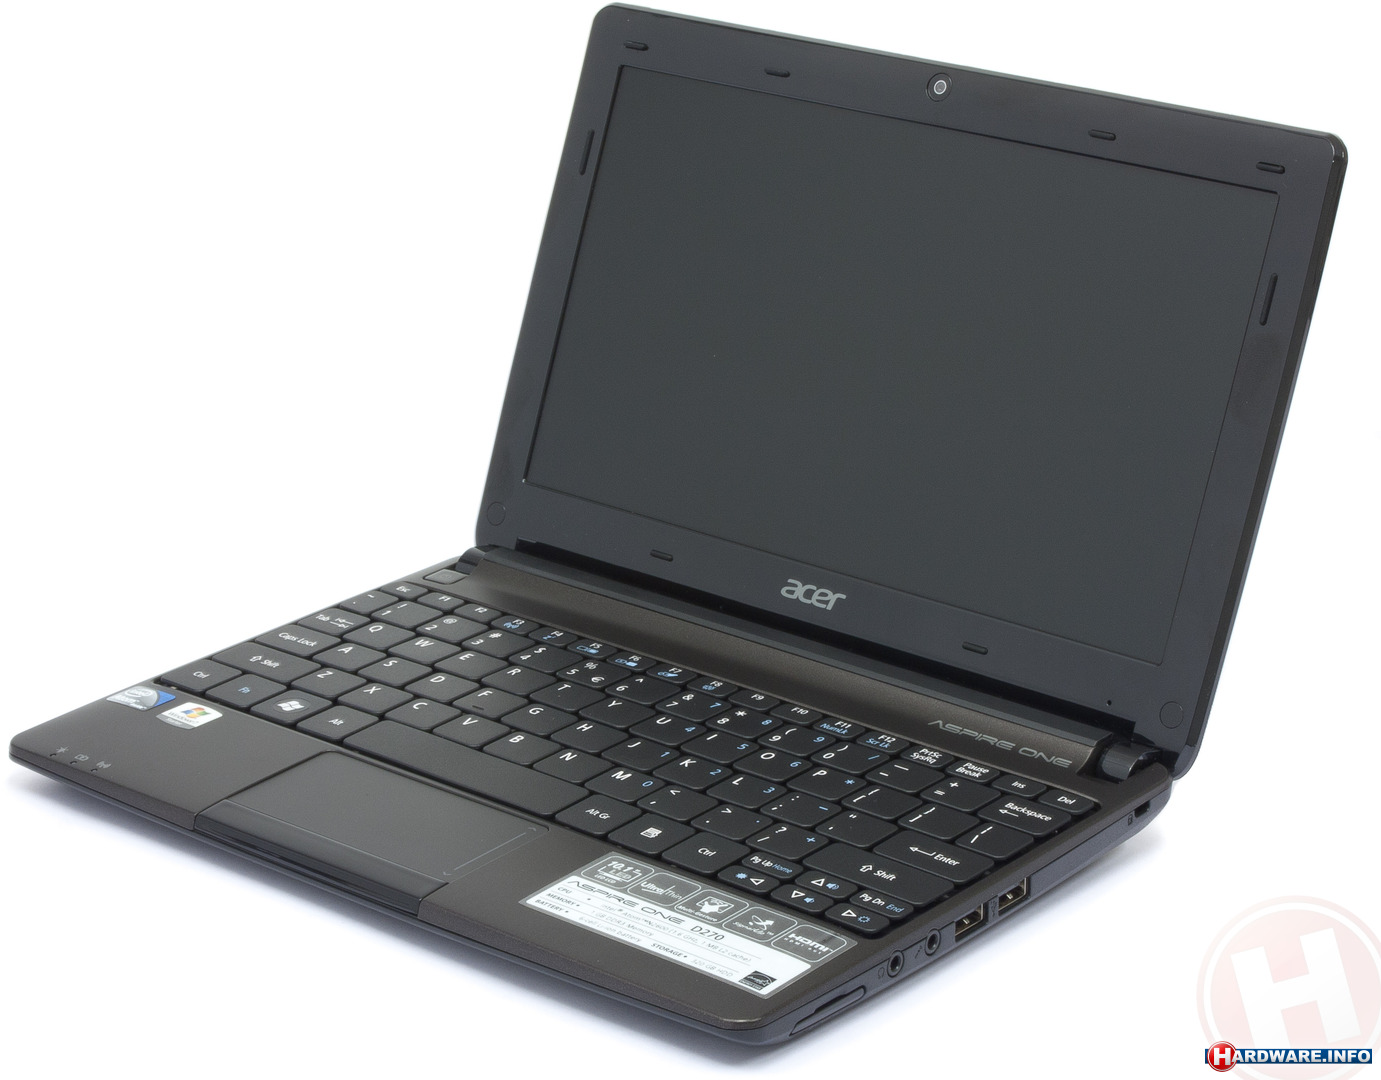 Acer mini laptop price list in bangalore dating 1